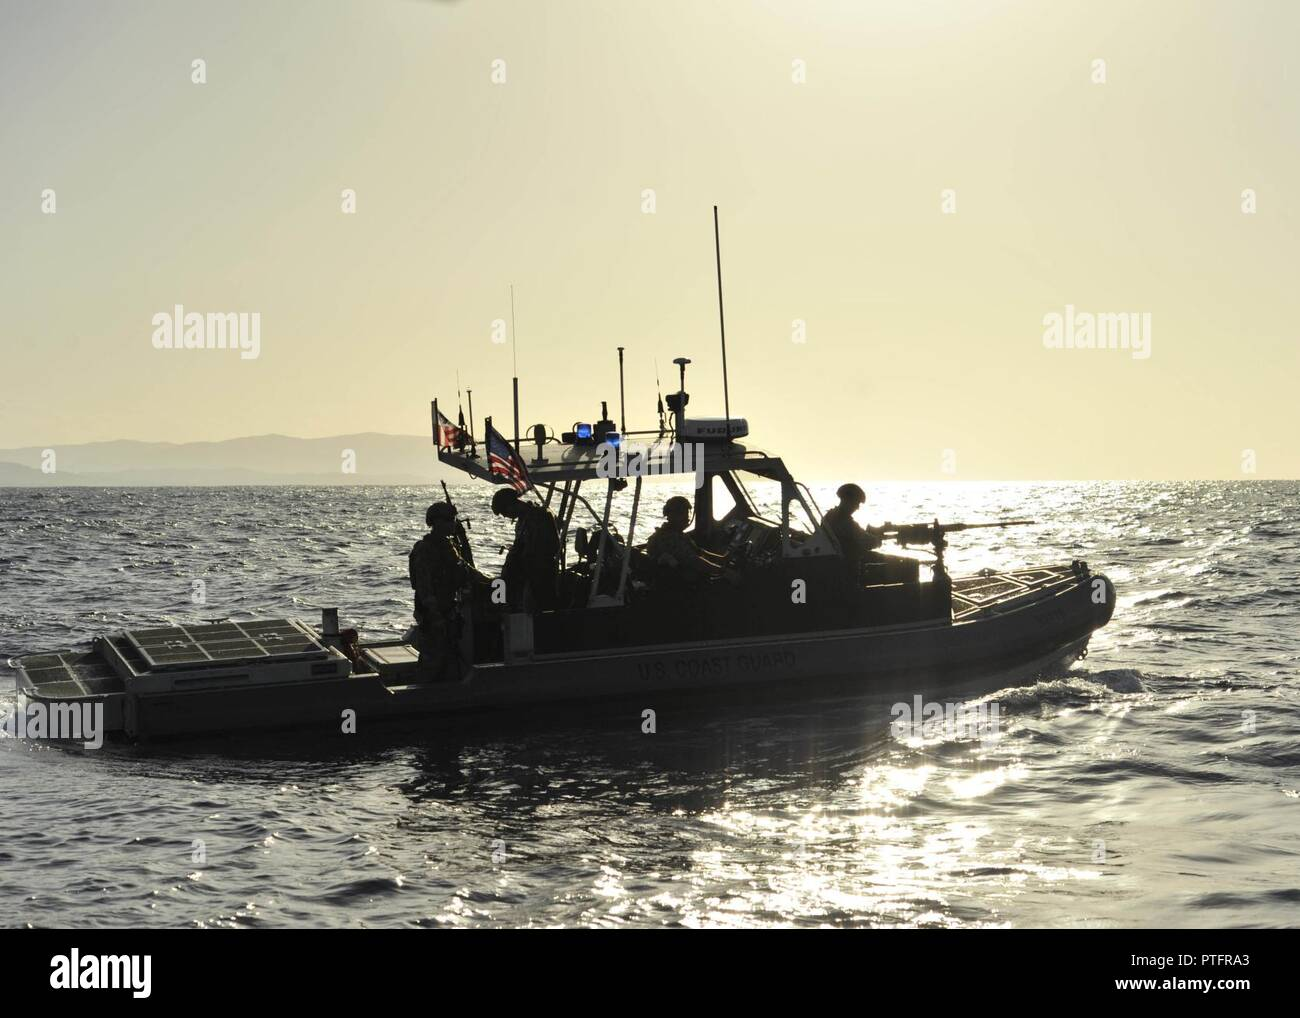 Coast Guardsmen from Port Security Unit 305 aboard a 32-foot Transportable Port Security Boat enforce a security zone off the coast of Naval Station Guantanamo Bay, Cuba, Wednesday, July 19, 2017. PSU 305 is deployed to Naval Station Guantanamo Bay to provide mission support for the Department of Defense. U.S. Coast Guard Stock Photo